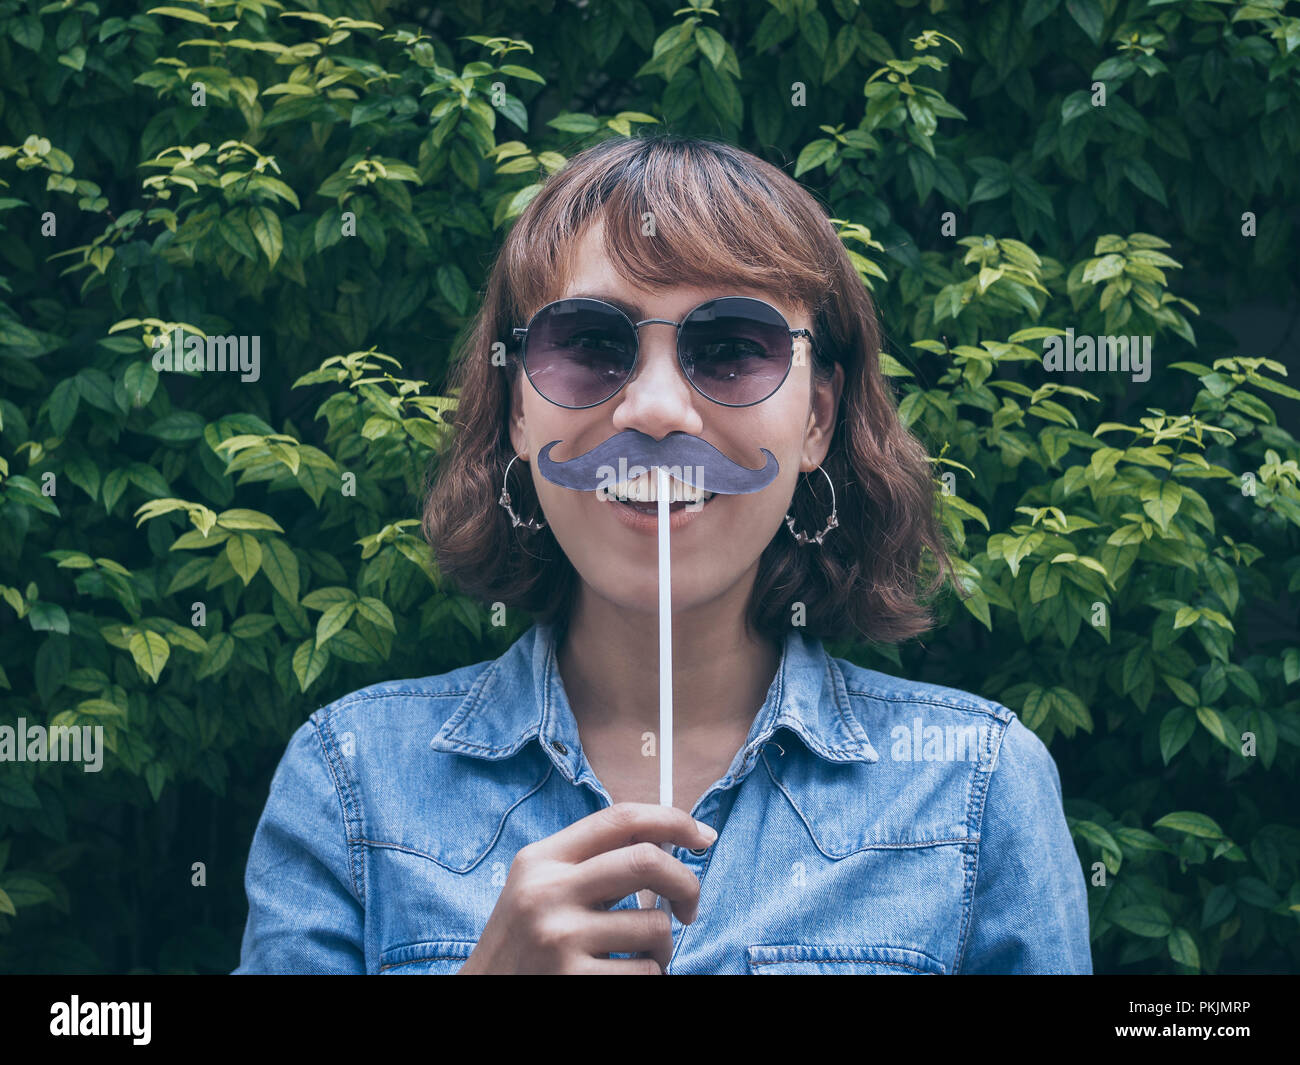 bc3bef0050 Beautiful asian woman short hair wearing blue jeans shirt and sunglasses  smiling with fake mustache on green leaves background.